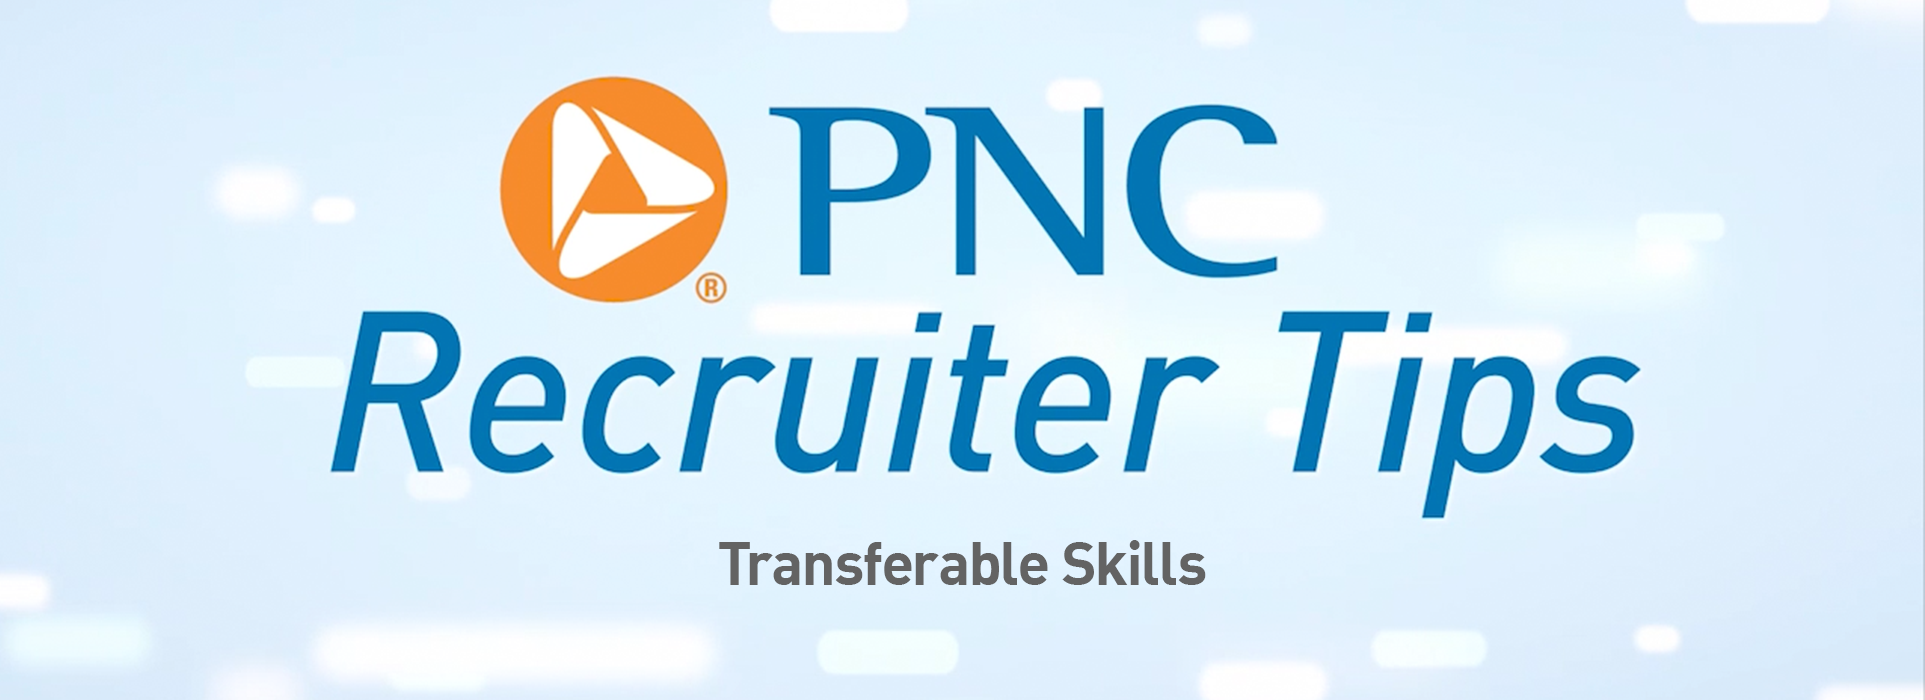 PNC Recruiter Tips: Transferable Skills